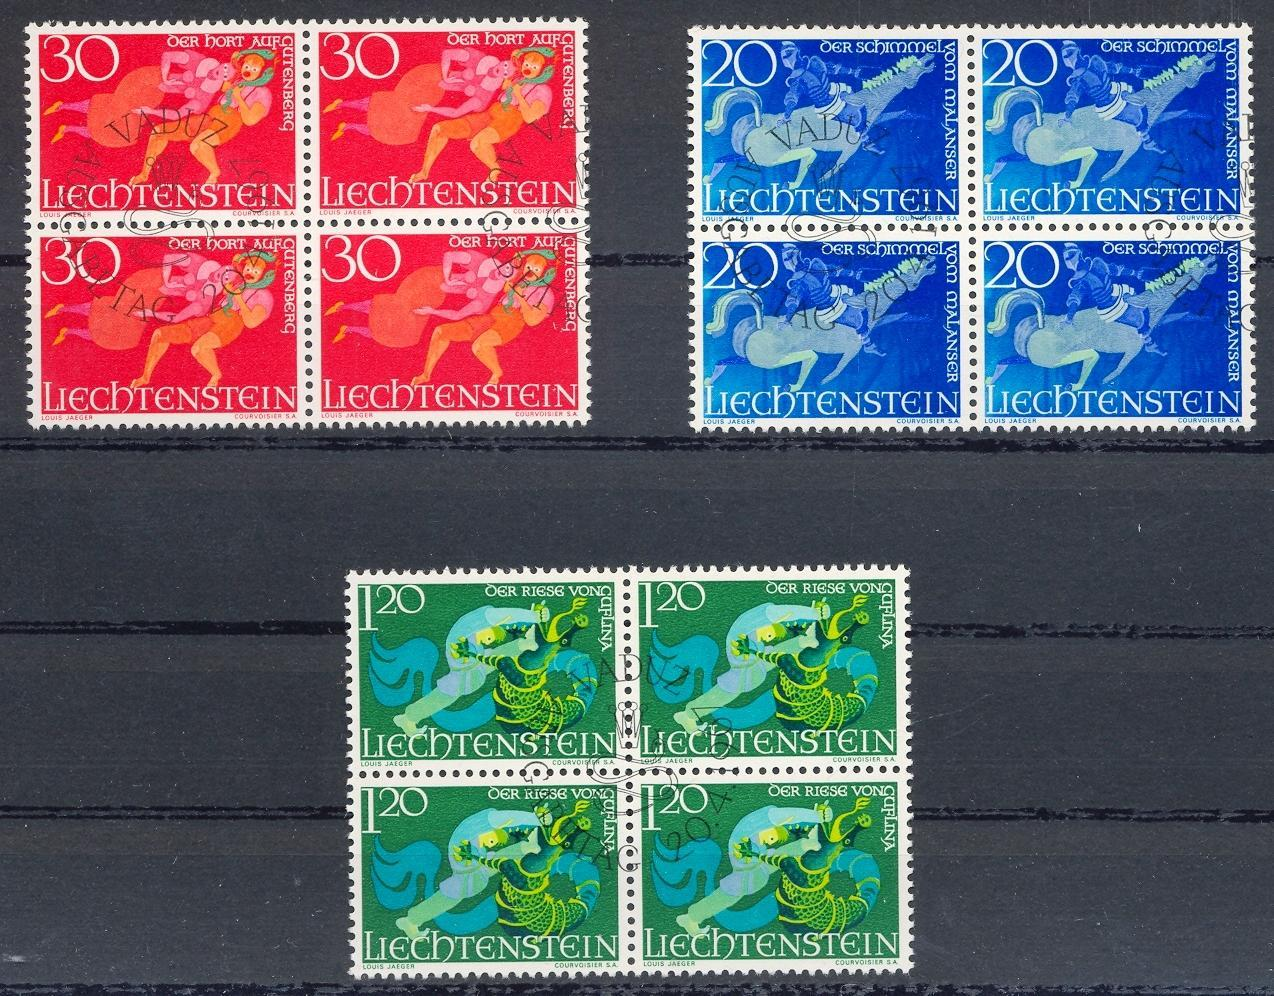 Stamps with Folklore / Fables, Dragon from Liechtenstein (image for product #032249)